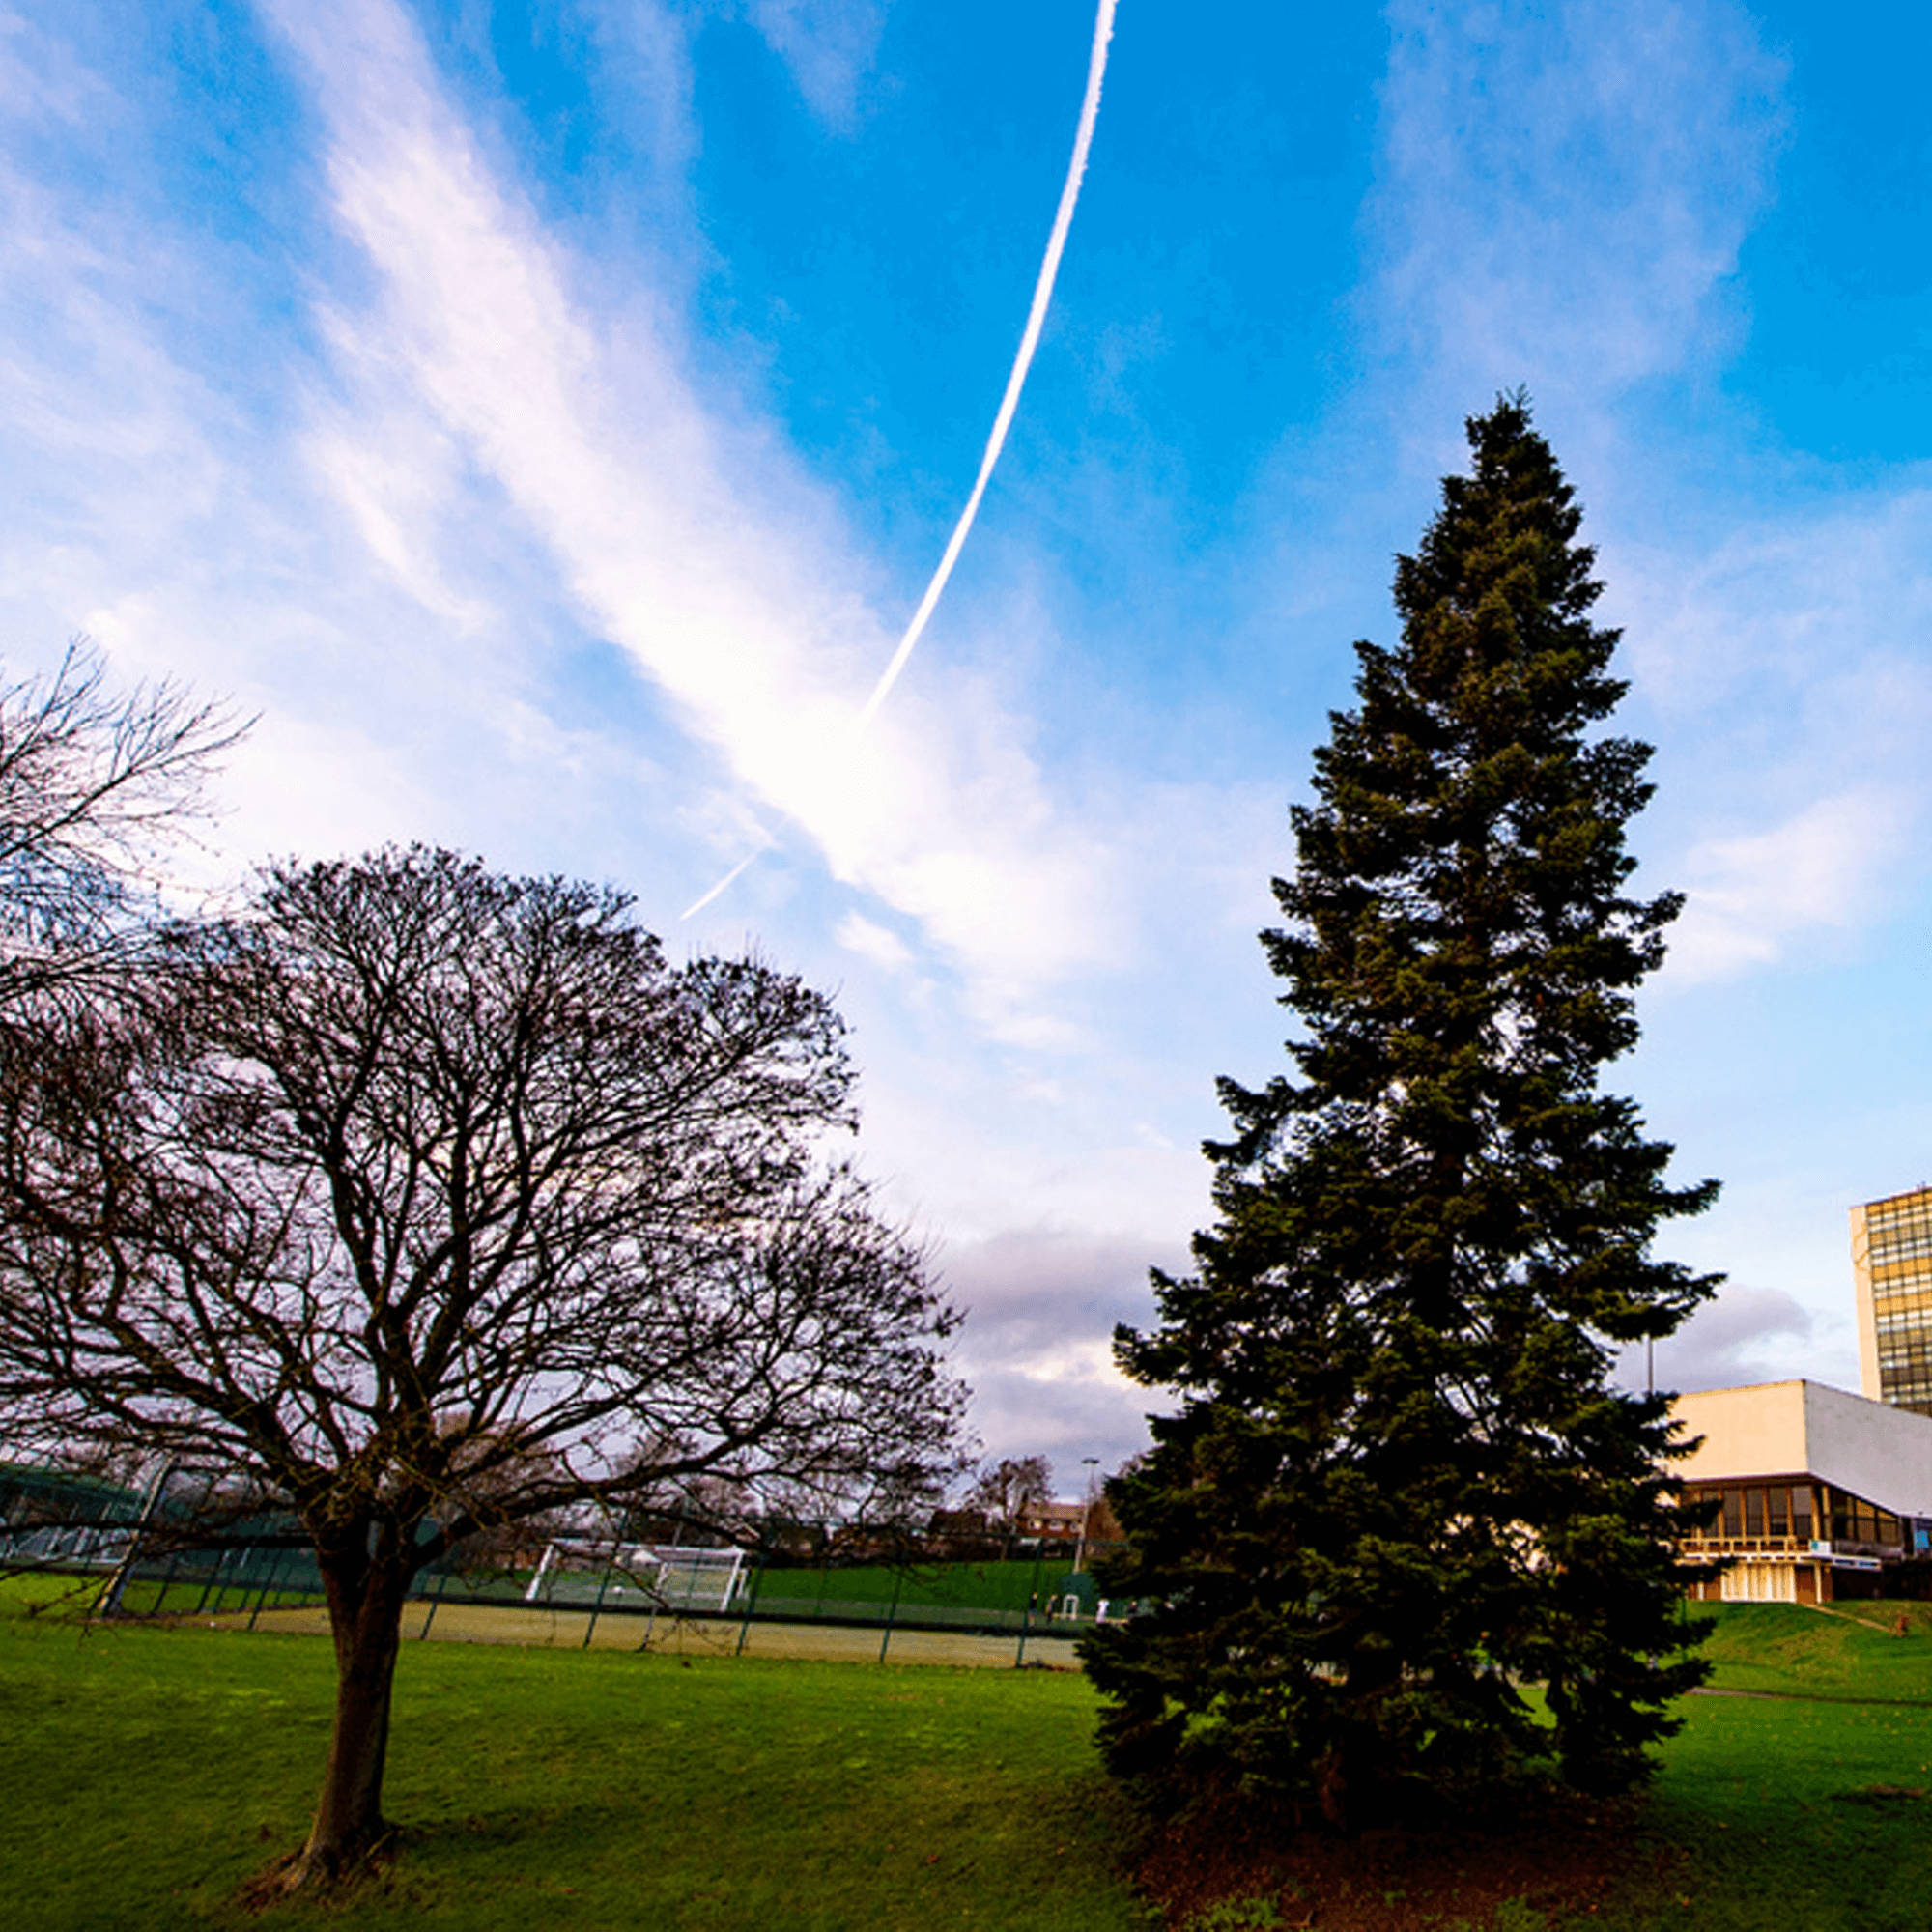 Two trees and a blue cloudy sky